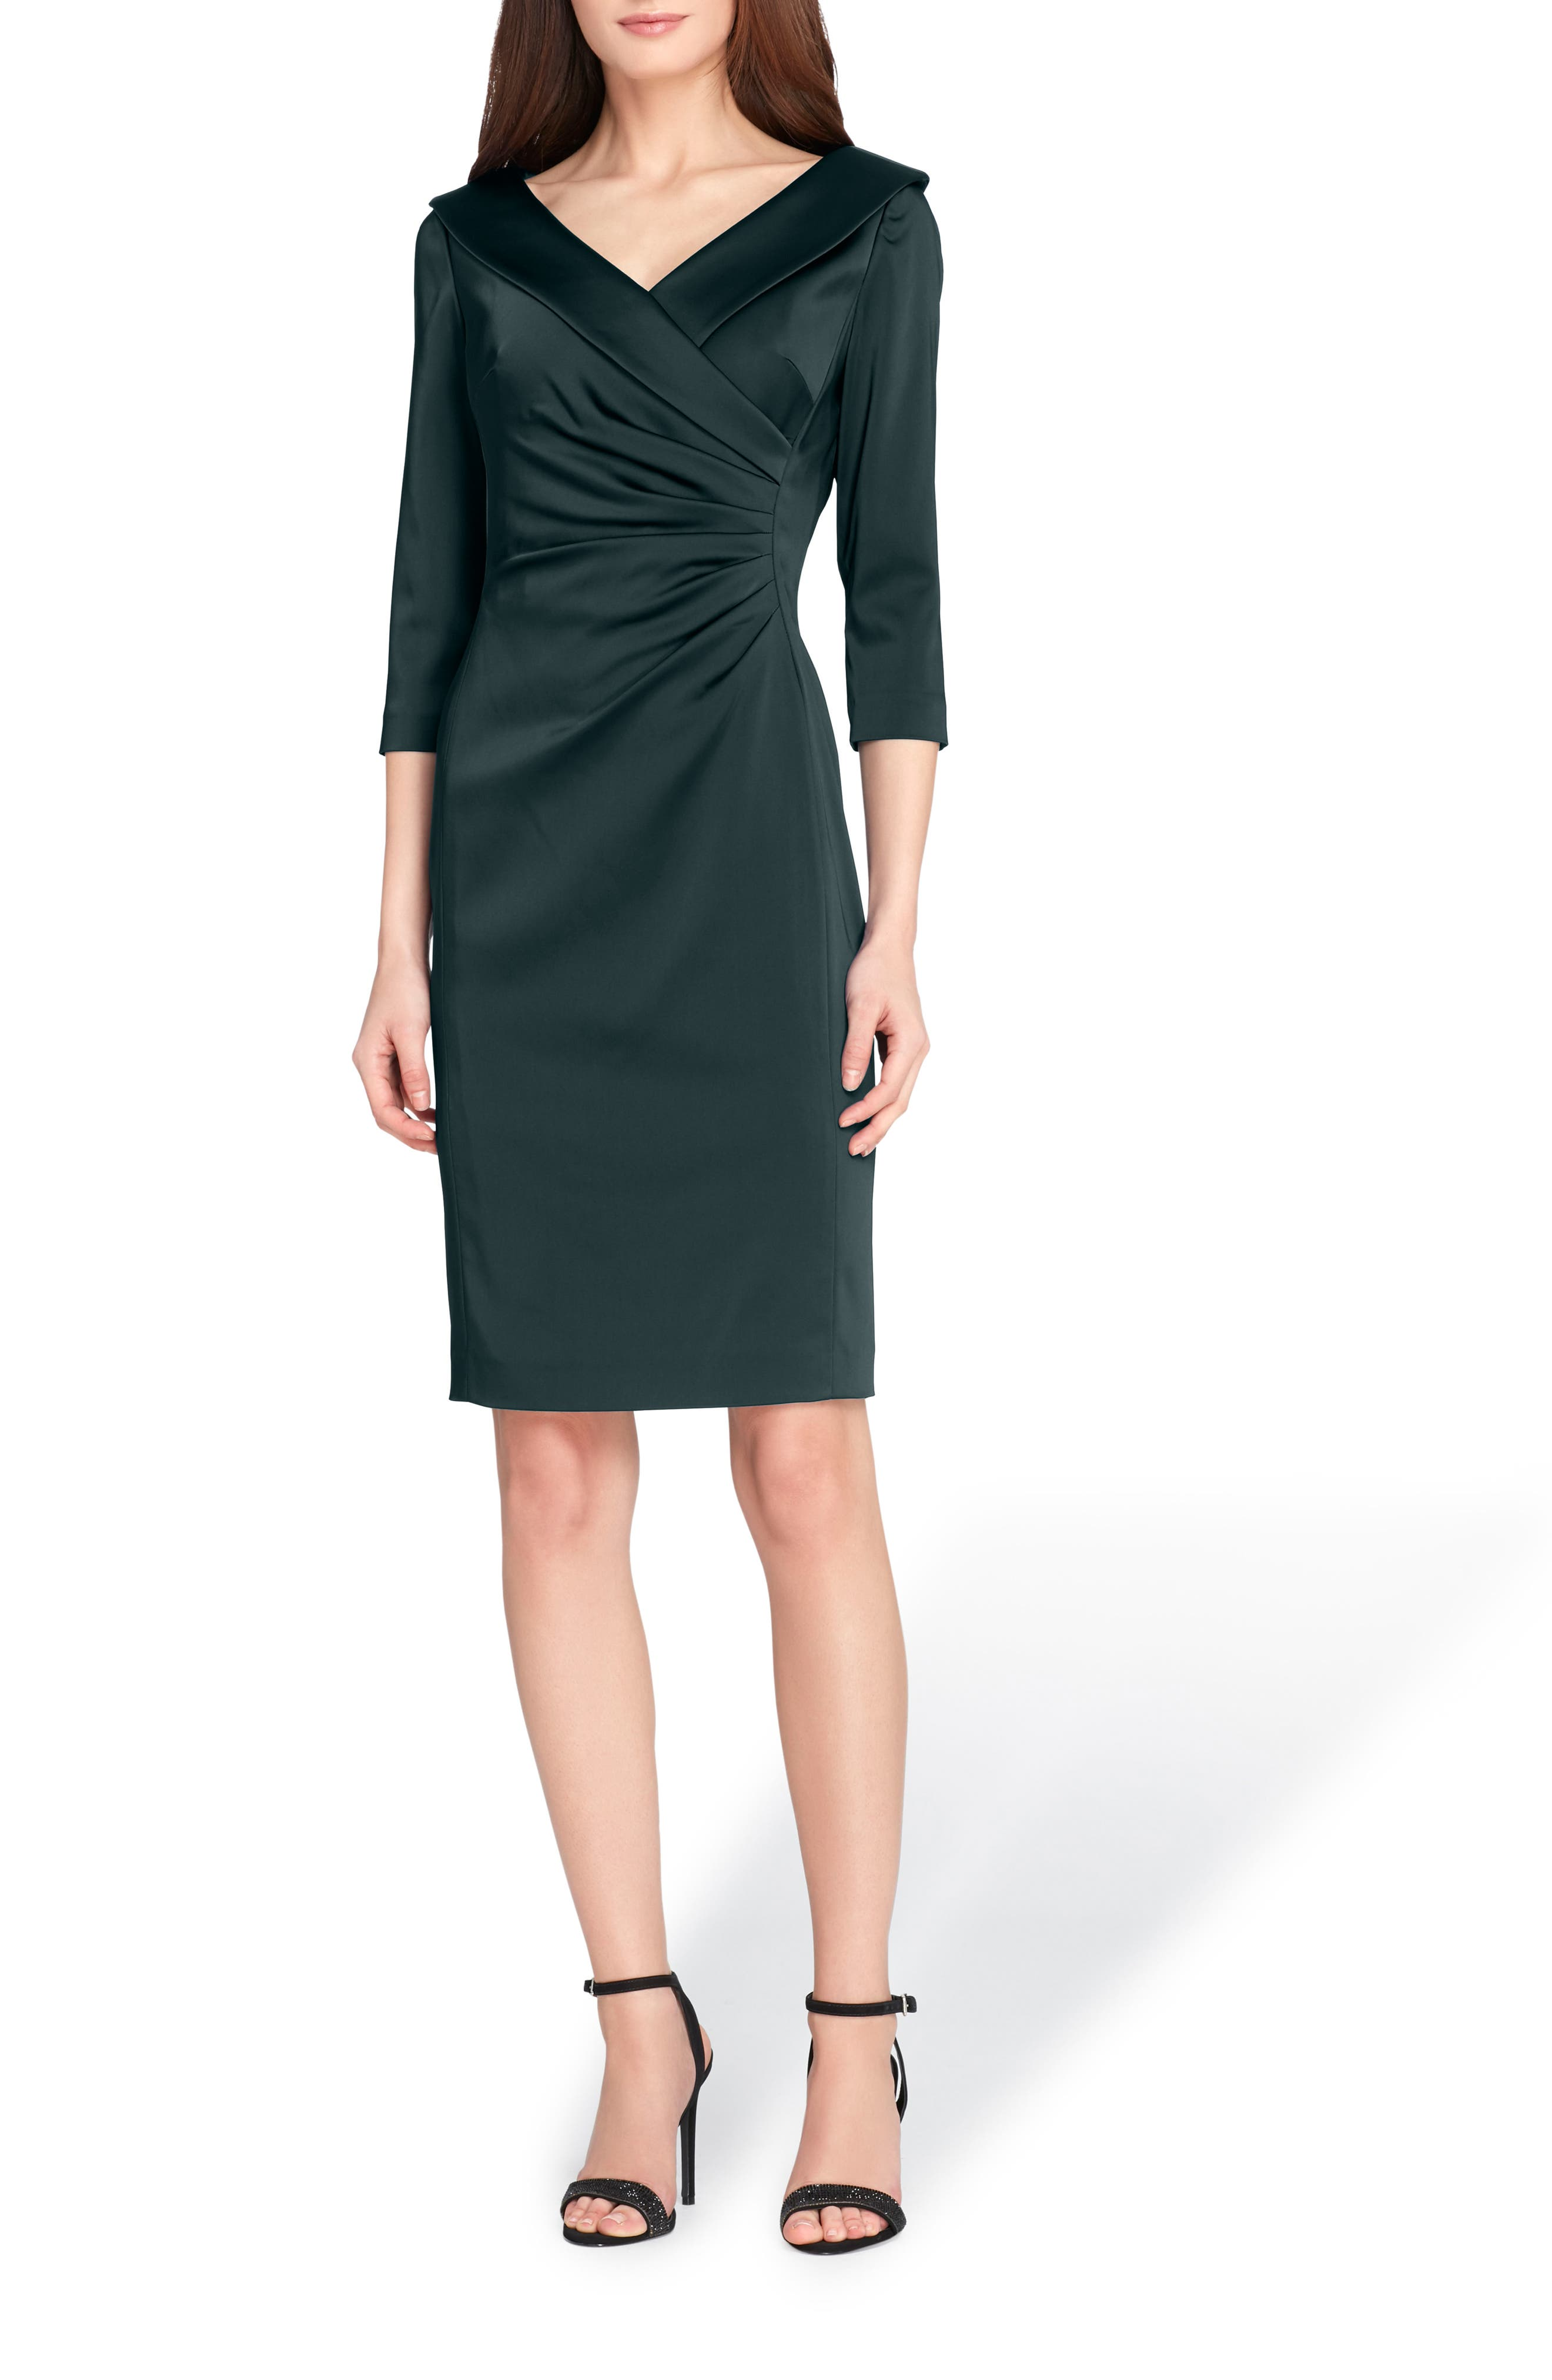 Ruched Stretch Satin Sheath Dress,                             Main thumbnail 1, color,                             Forest Green